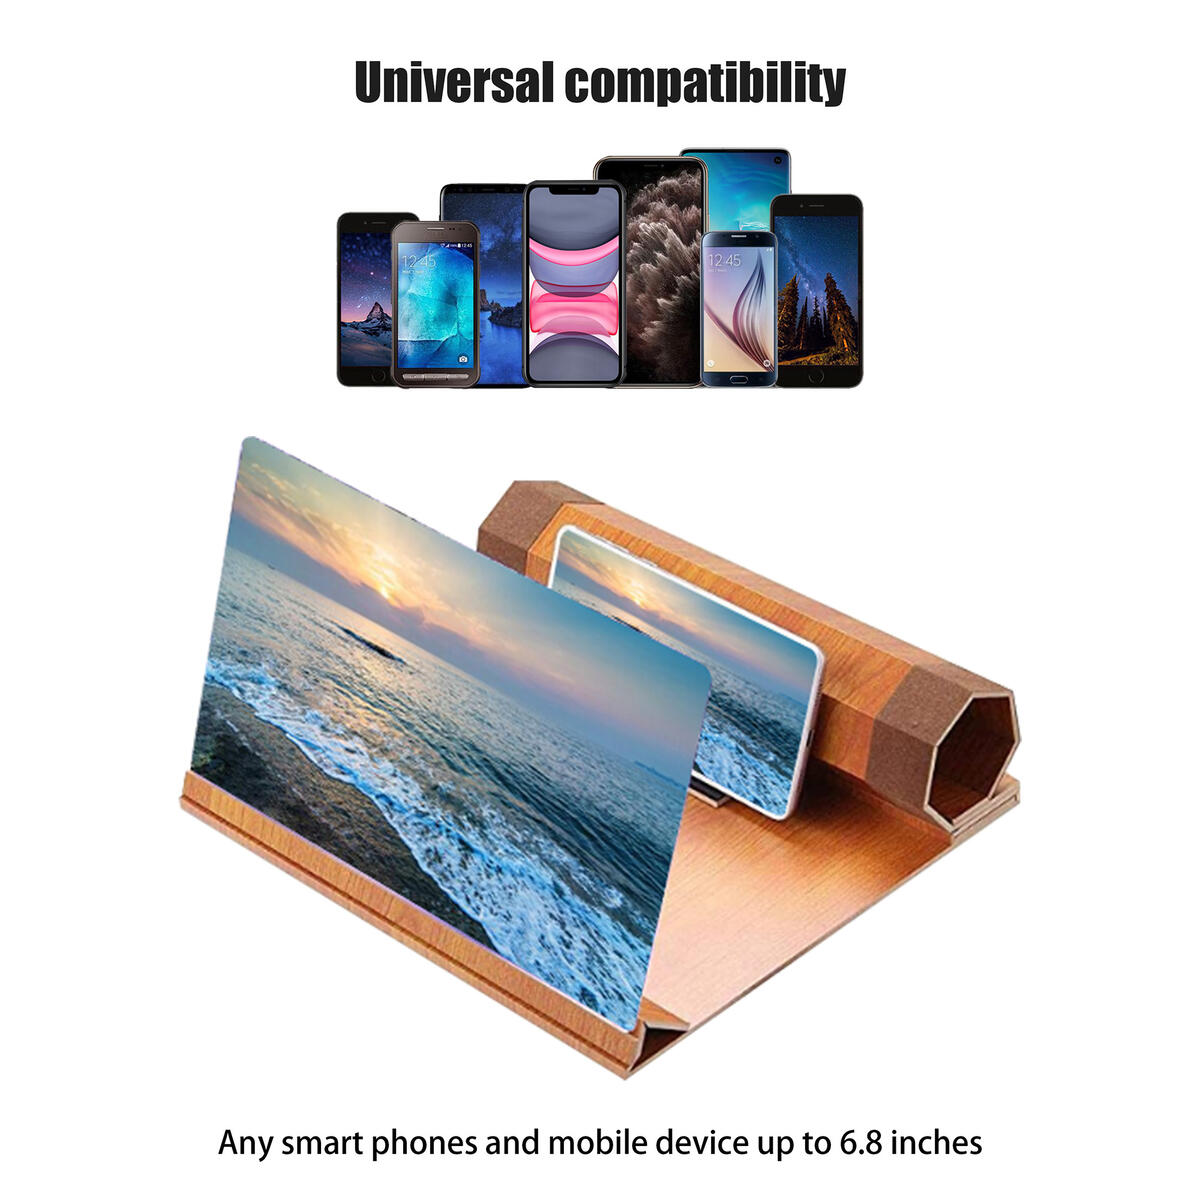 """12"""" HD Screen Magnifier for Phone,Upgraded 3D Screen Projector/Amplifier for Movies/Videos/Gaming,Wooden/Foldable/Stand/Accessories/Gadget,Compatible with All Mobile/Smart/Cell Phone(Light Brown)"""